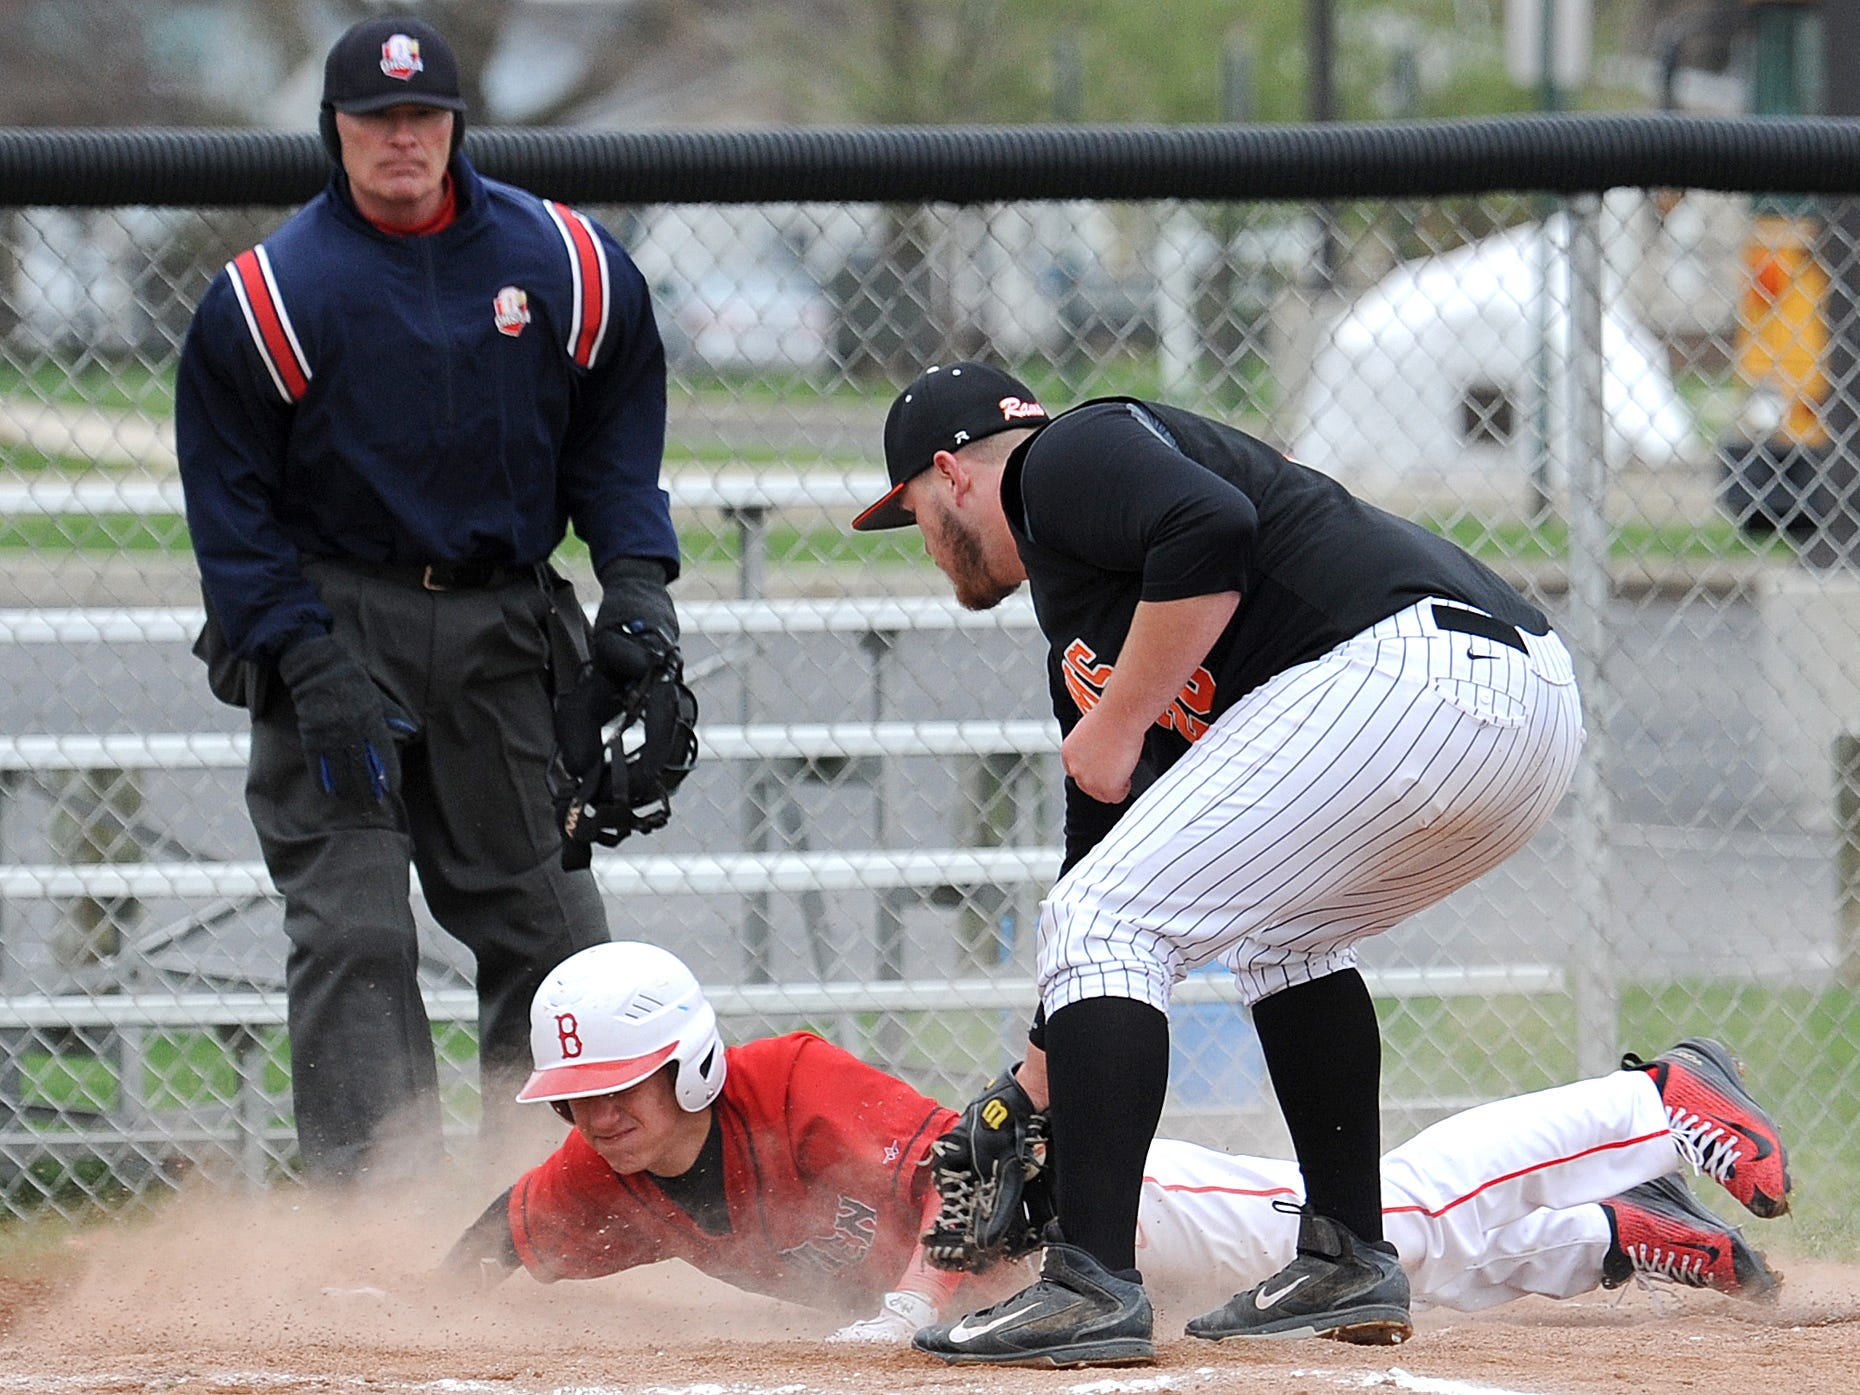 Bucyrus' Jesse Heinle slides on home base as Upper Sandusky's pitcher, Cody Gabriel, attempts to tag Heinle out during their game Wednesday evening.